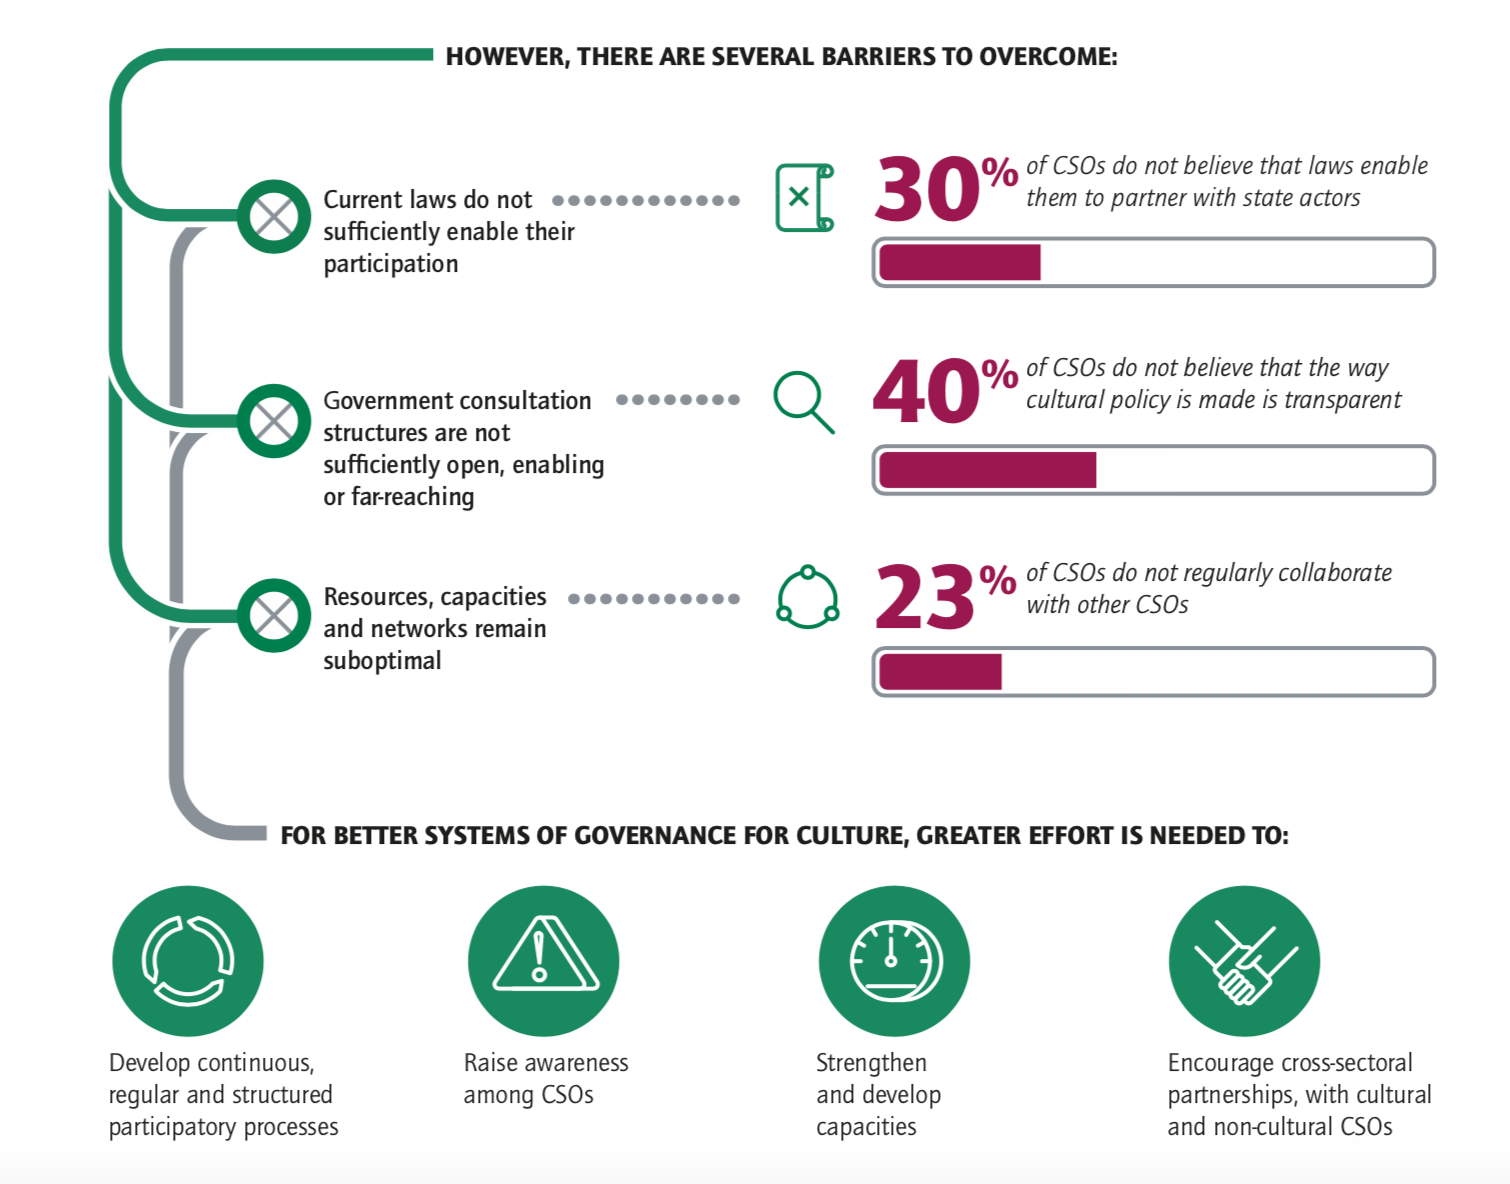 Section of an infographic discussing participation in cultural policy development and explaining the challenges faced by Civil Society Organisations (CSOs) in engaging with the Convention and other stakeholders,and suggests opportunities for governments to capacitate.